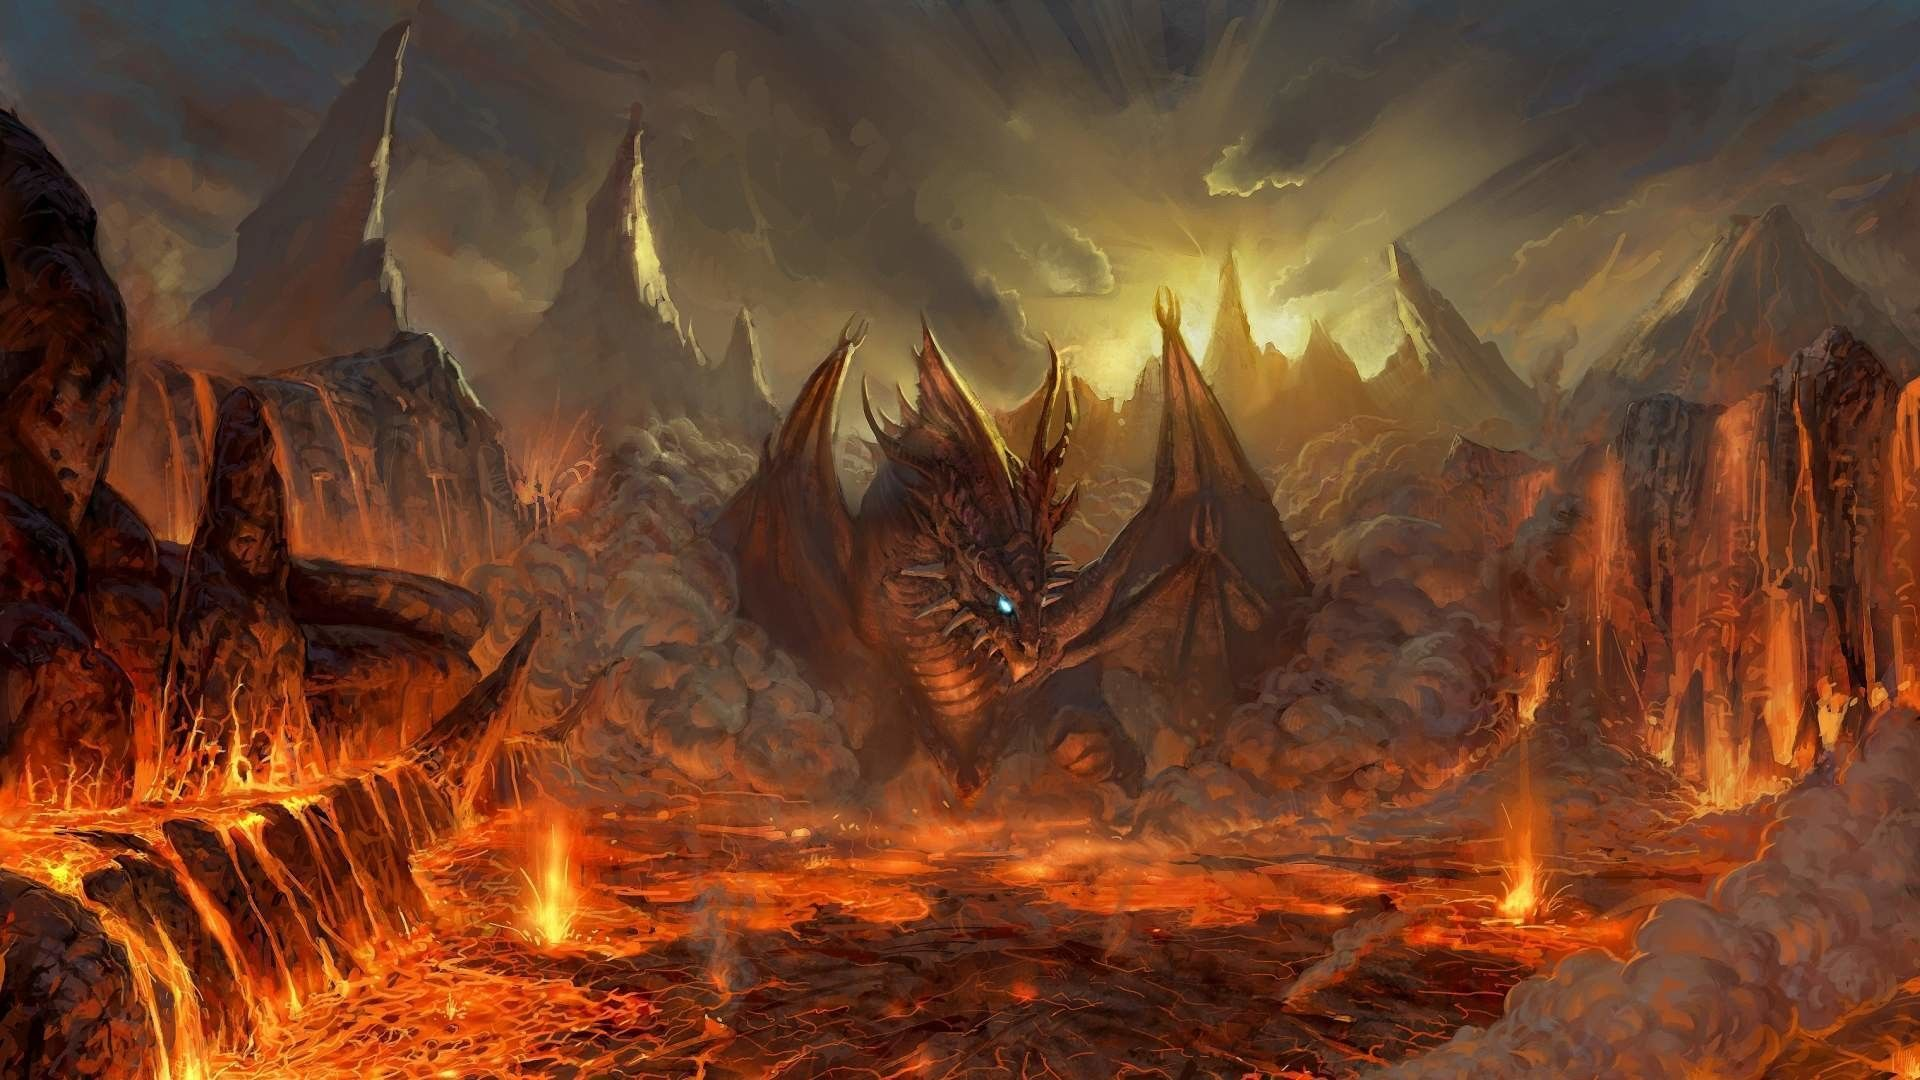 Wizards And Dragons Wallpapers Top Free Wizards And